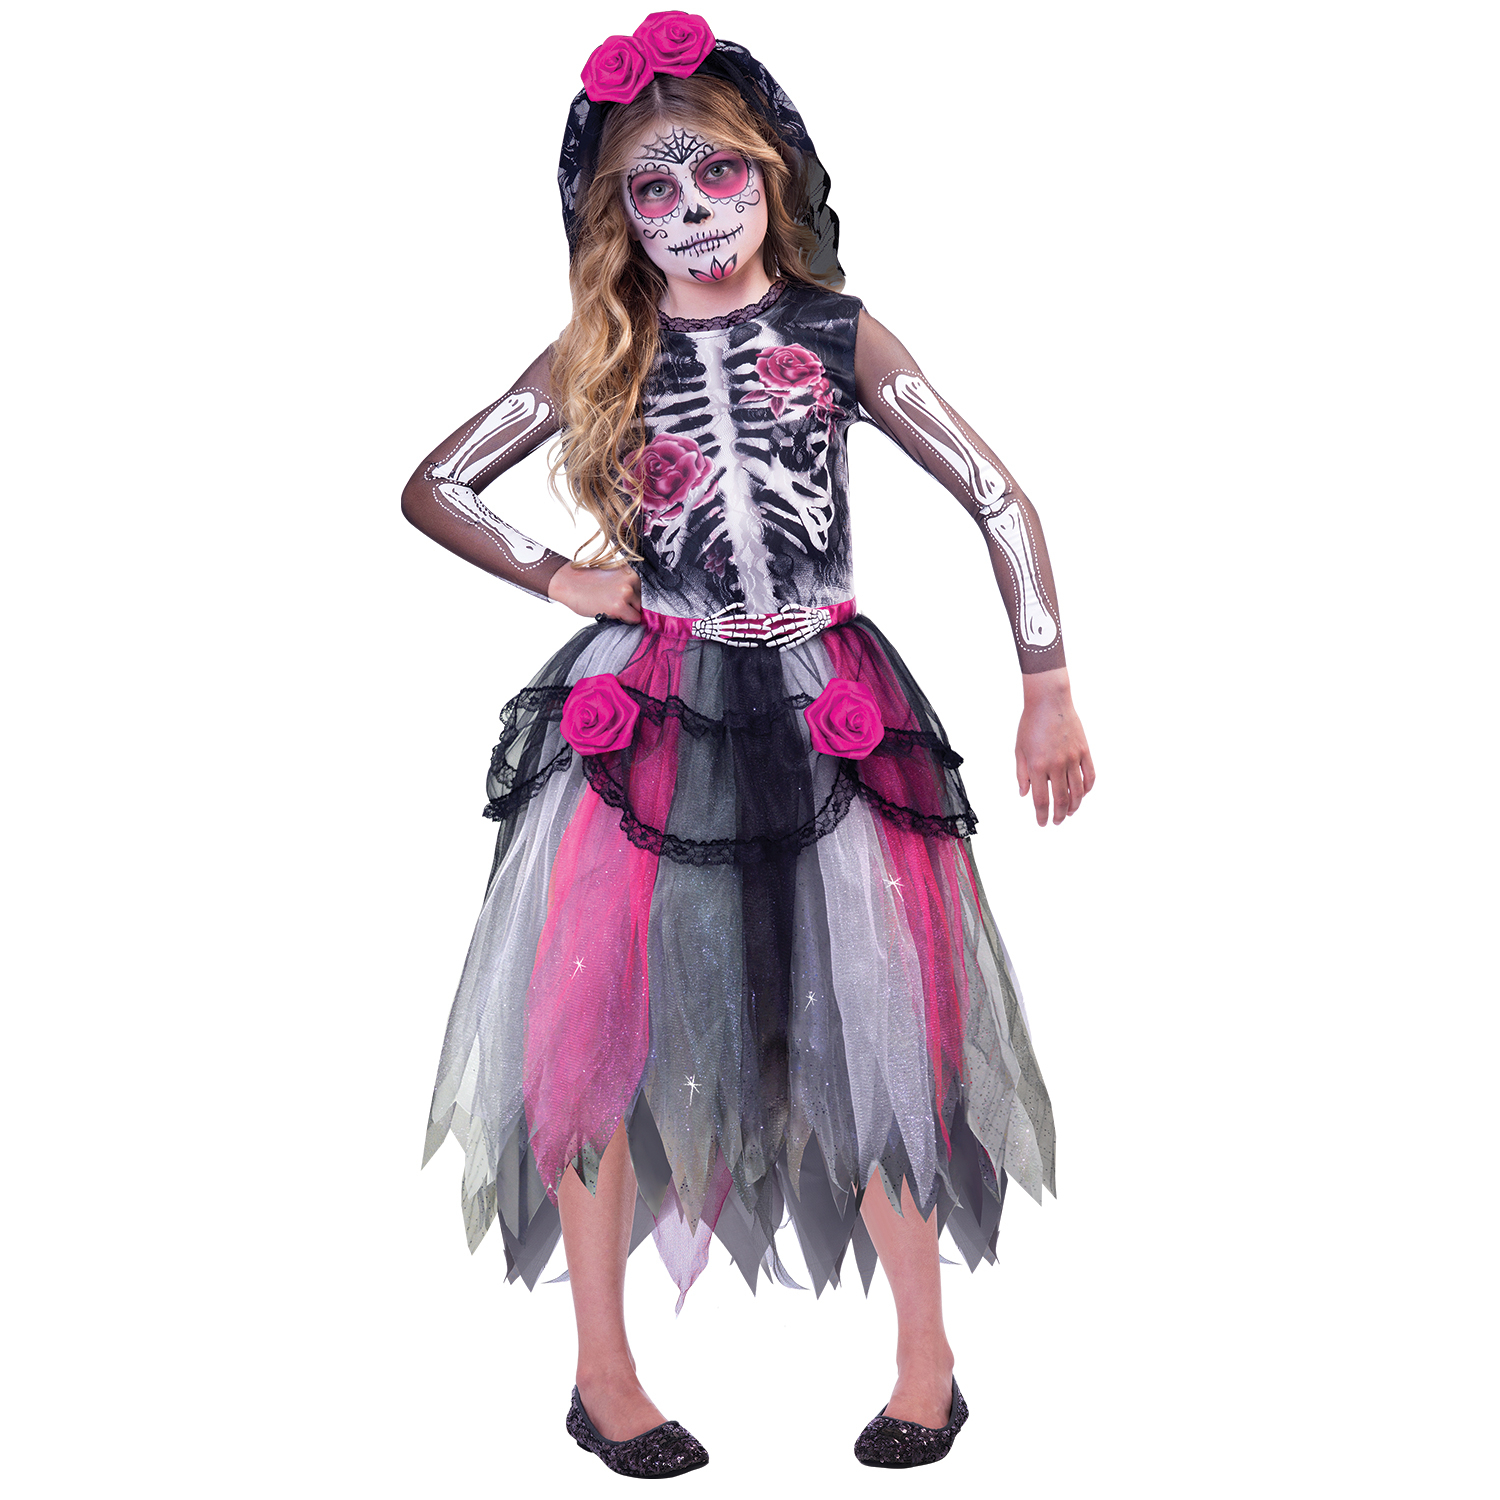 children's costume day of the dead spirit 10 - 12 years : amscan europe